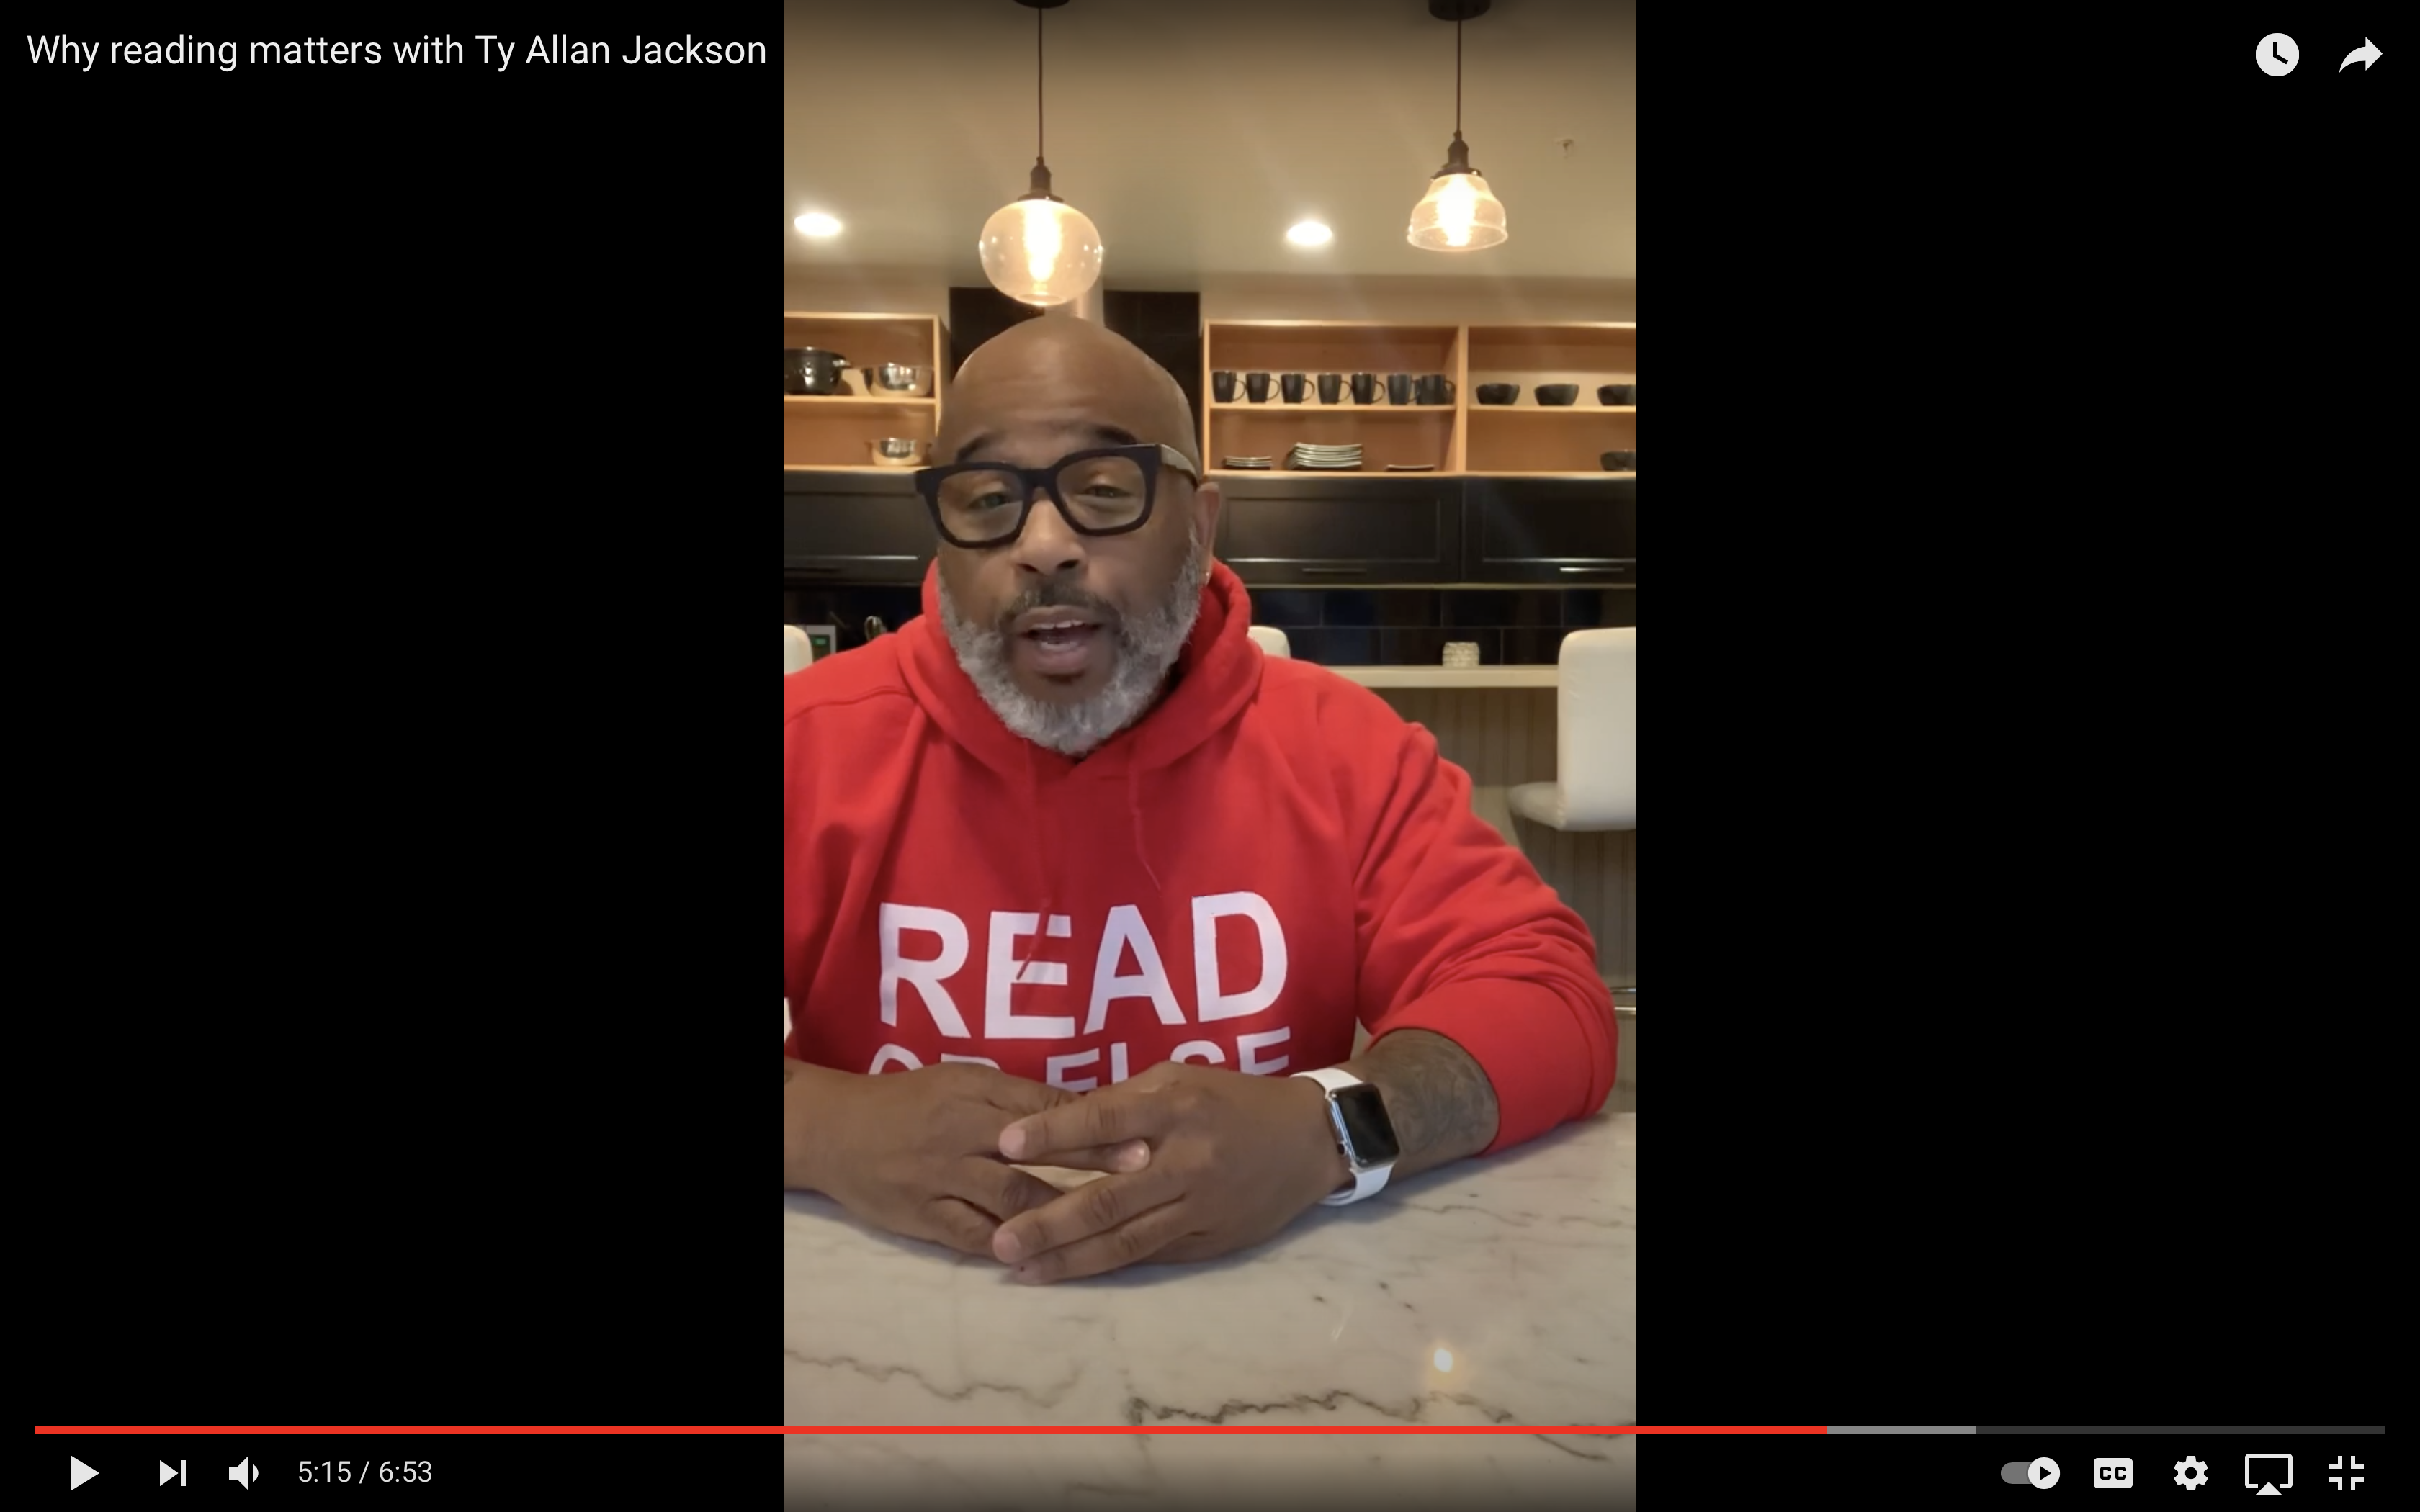 Why Reading Matters with Ty Allan Jackson.